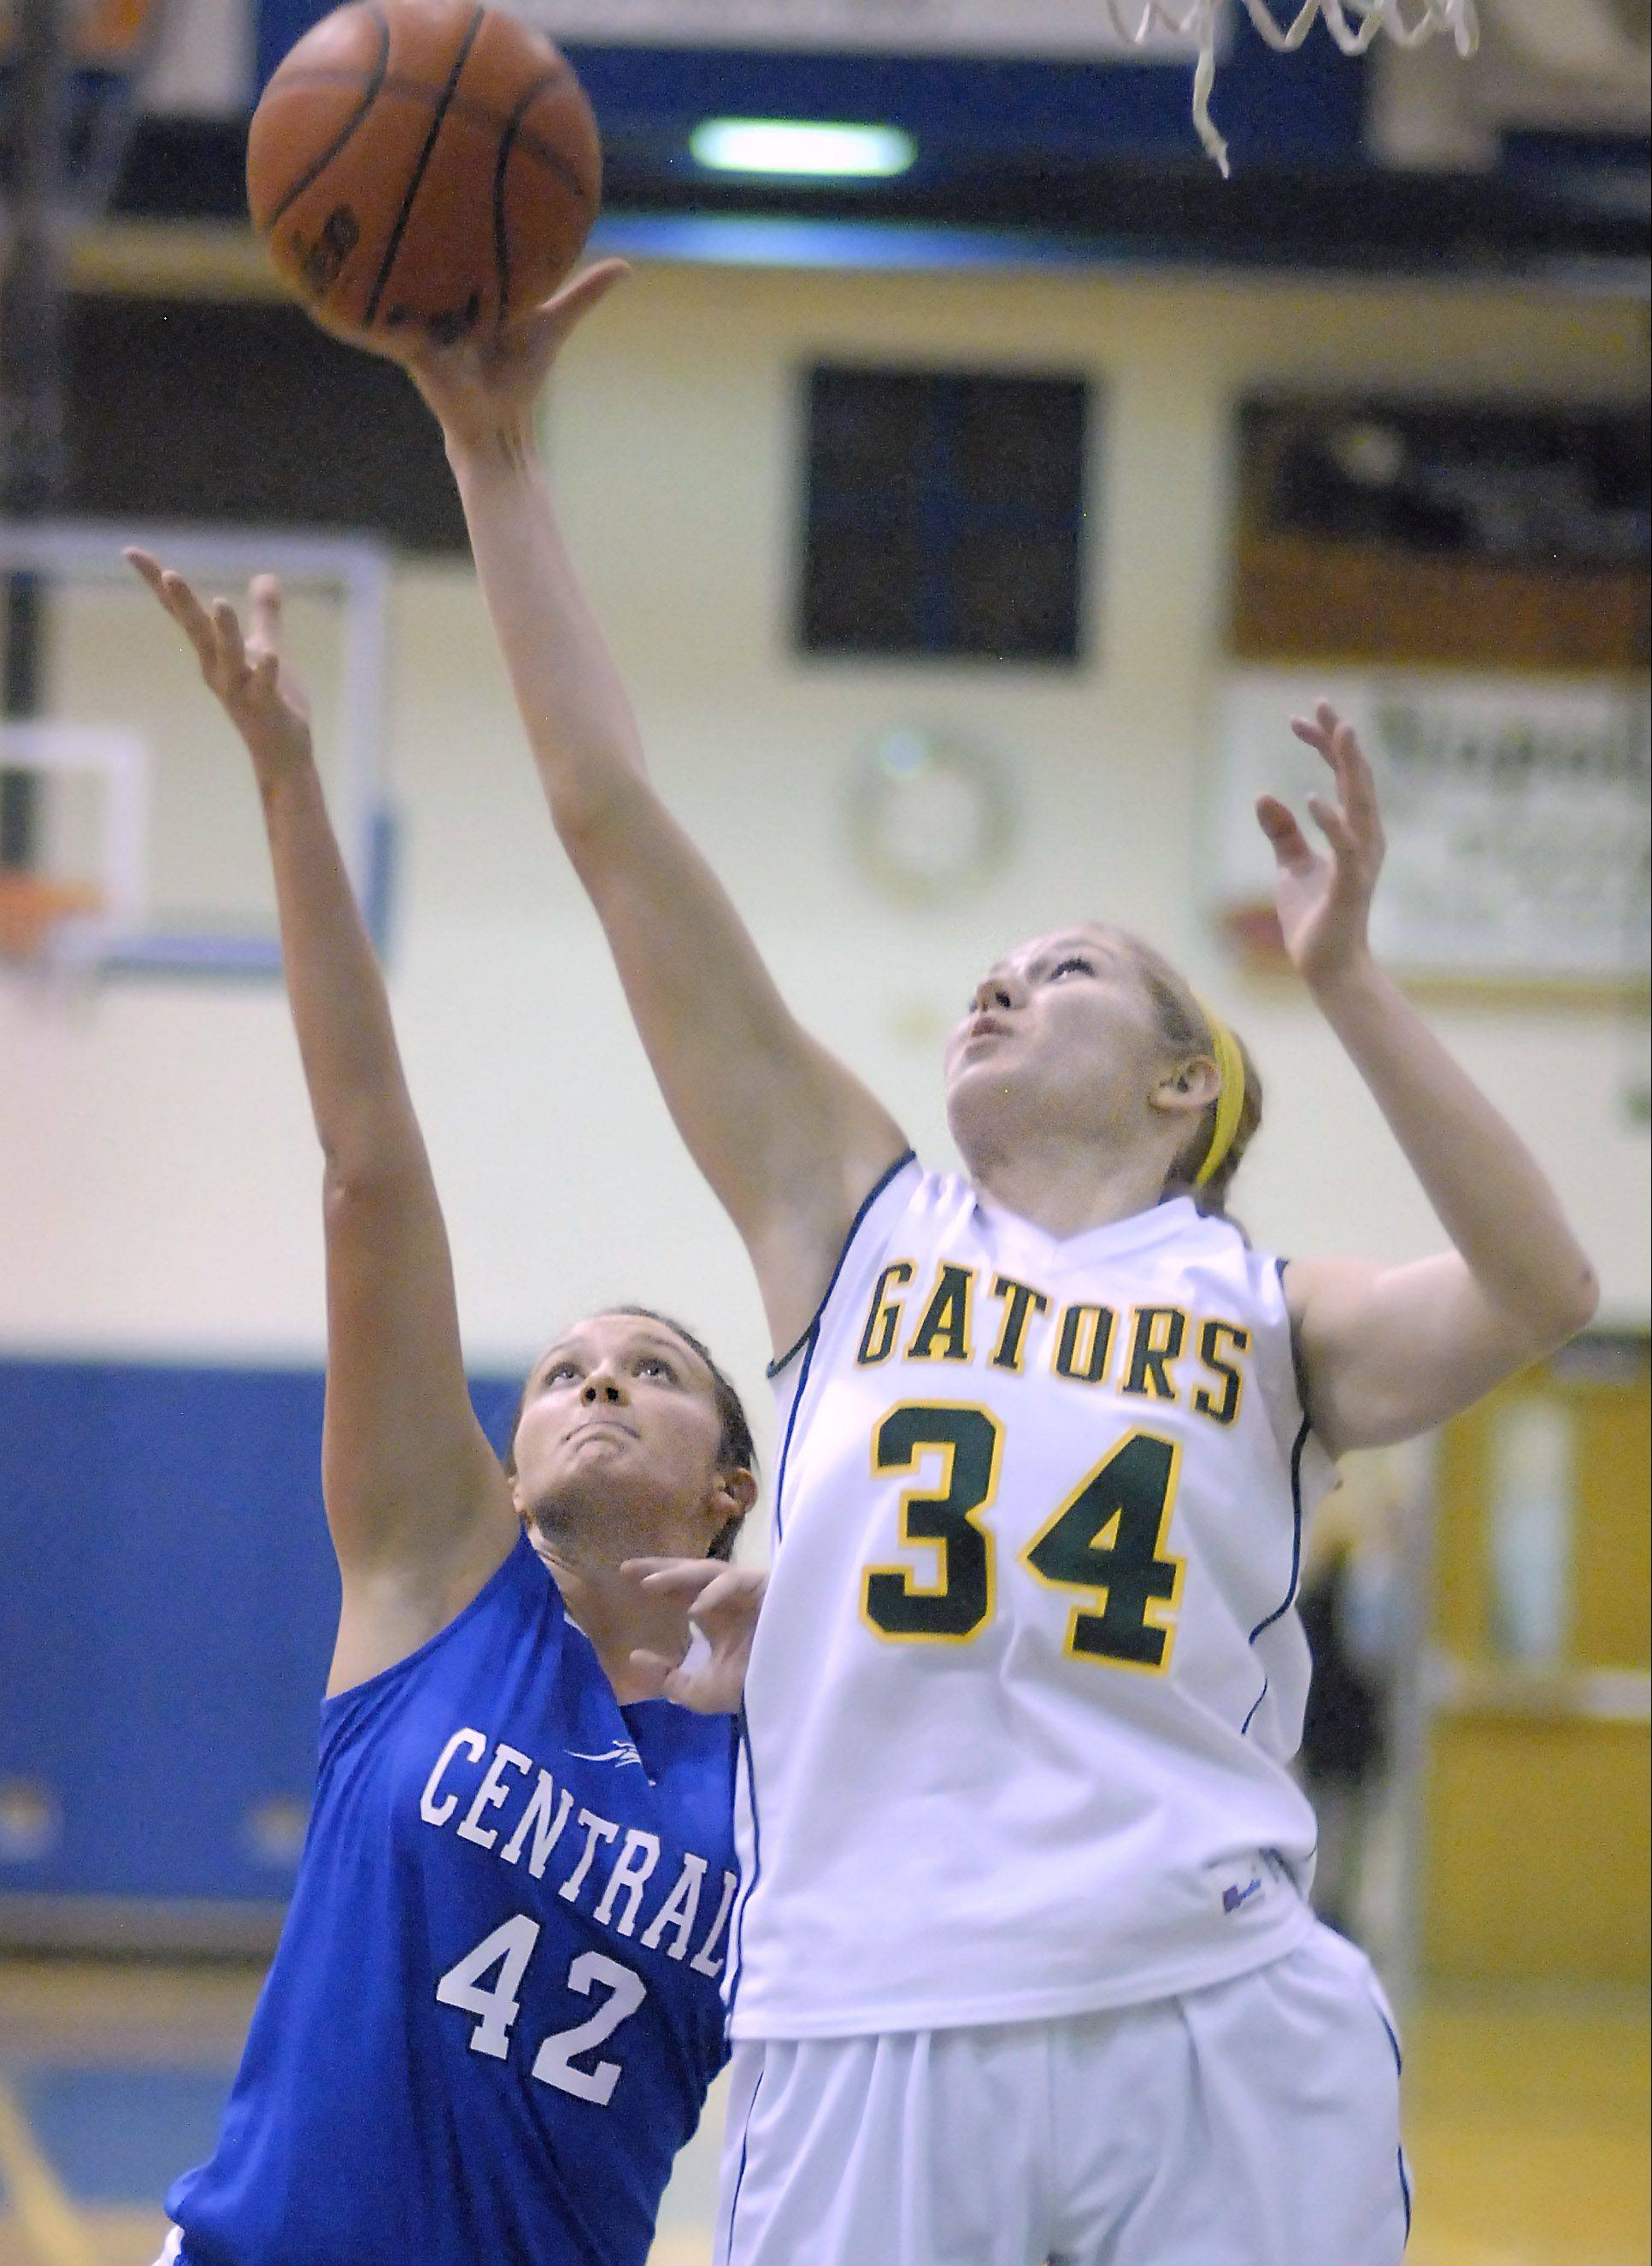 Burlington Central's Alison Colby and Crystal Lake South's Sara Mickow battle for a rebound Saturday during the Northern Illinois Holiday Classic at Woodstock.